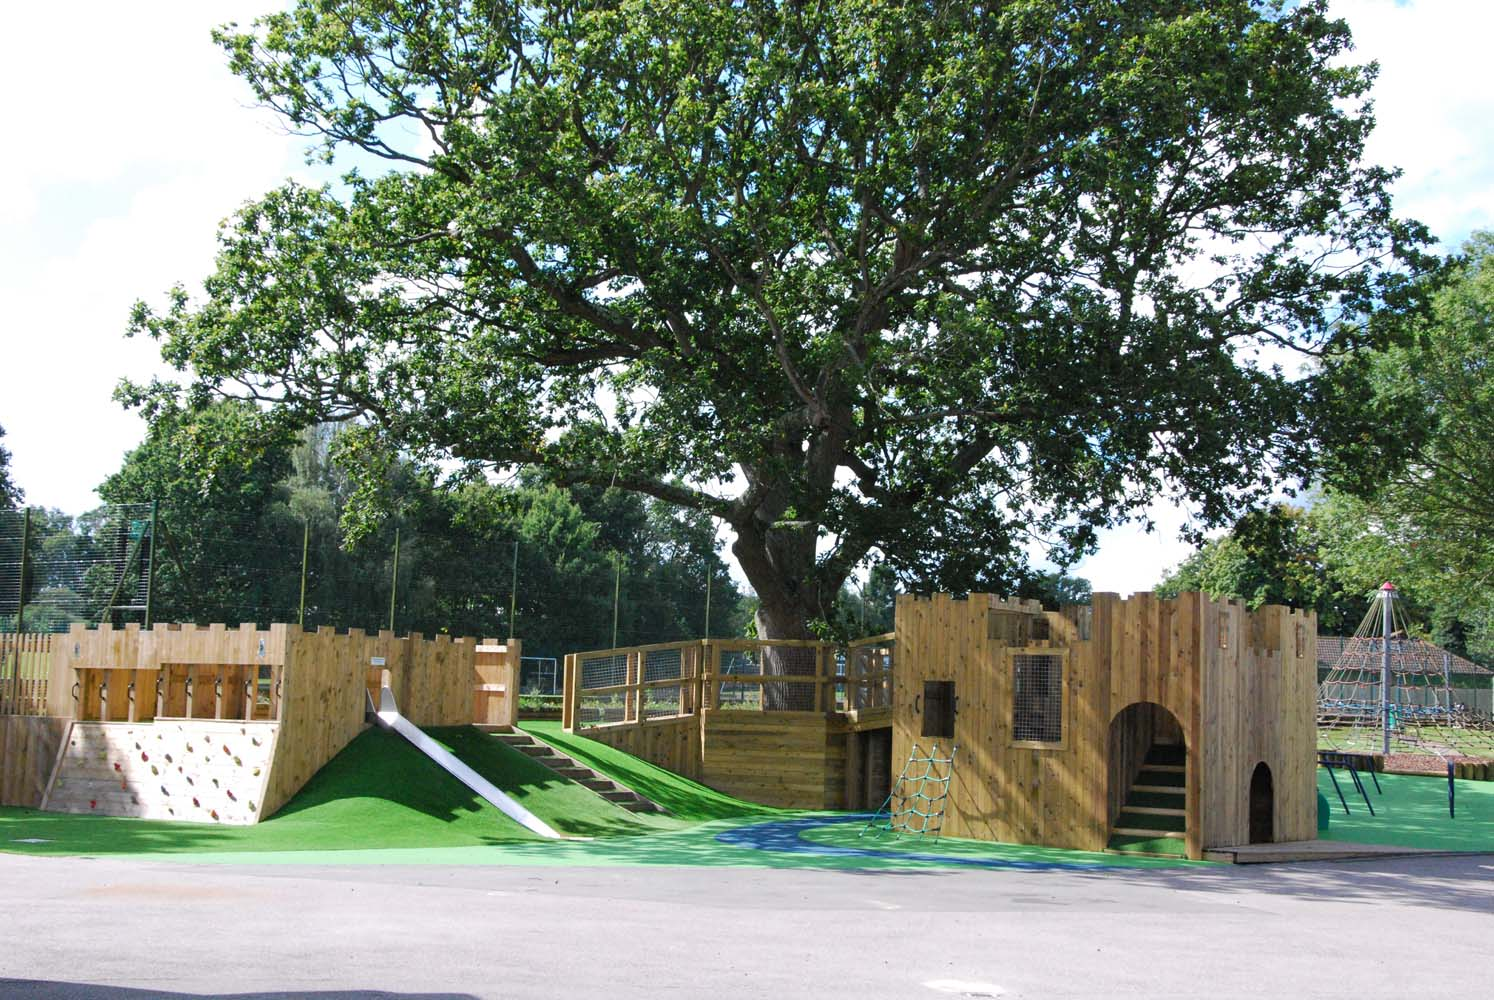 View of the playground in the prep school